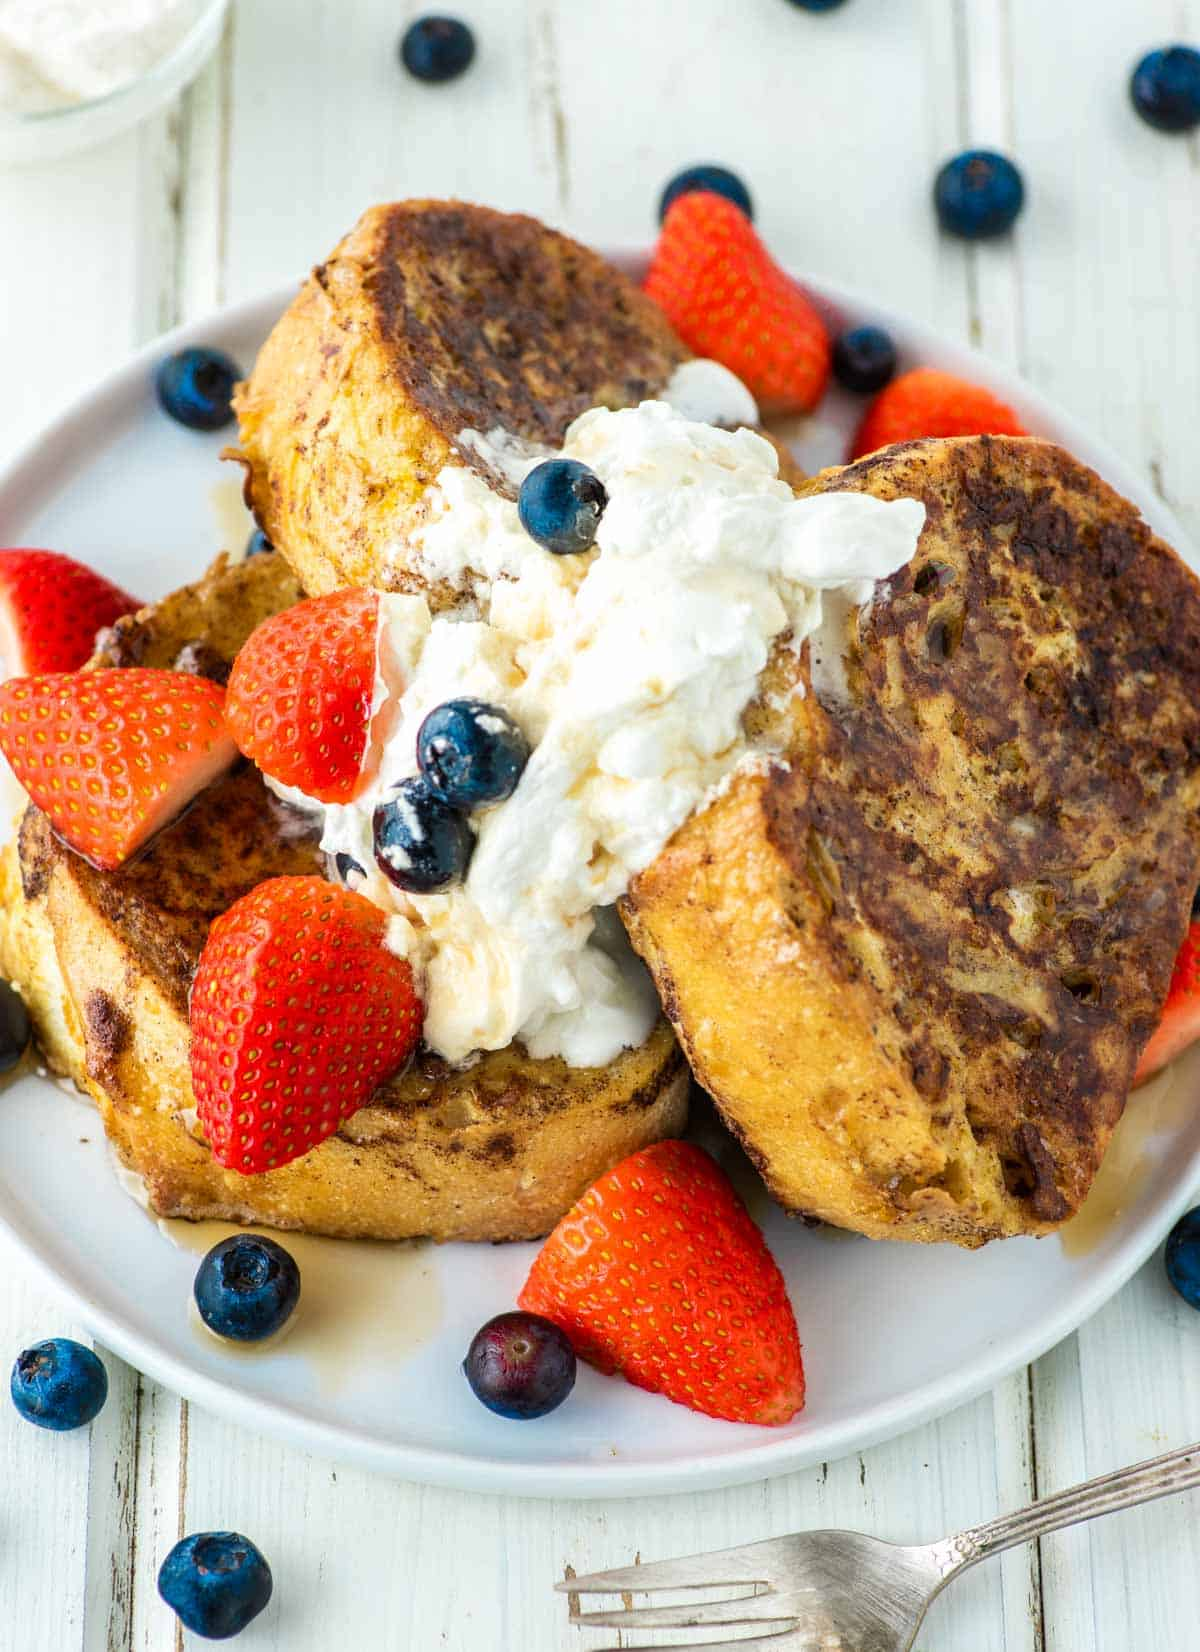 3 stacked slices of French toast on plate with whipped cream and fruit